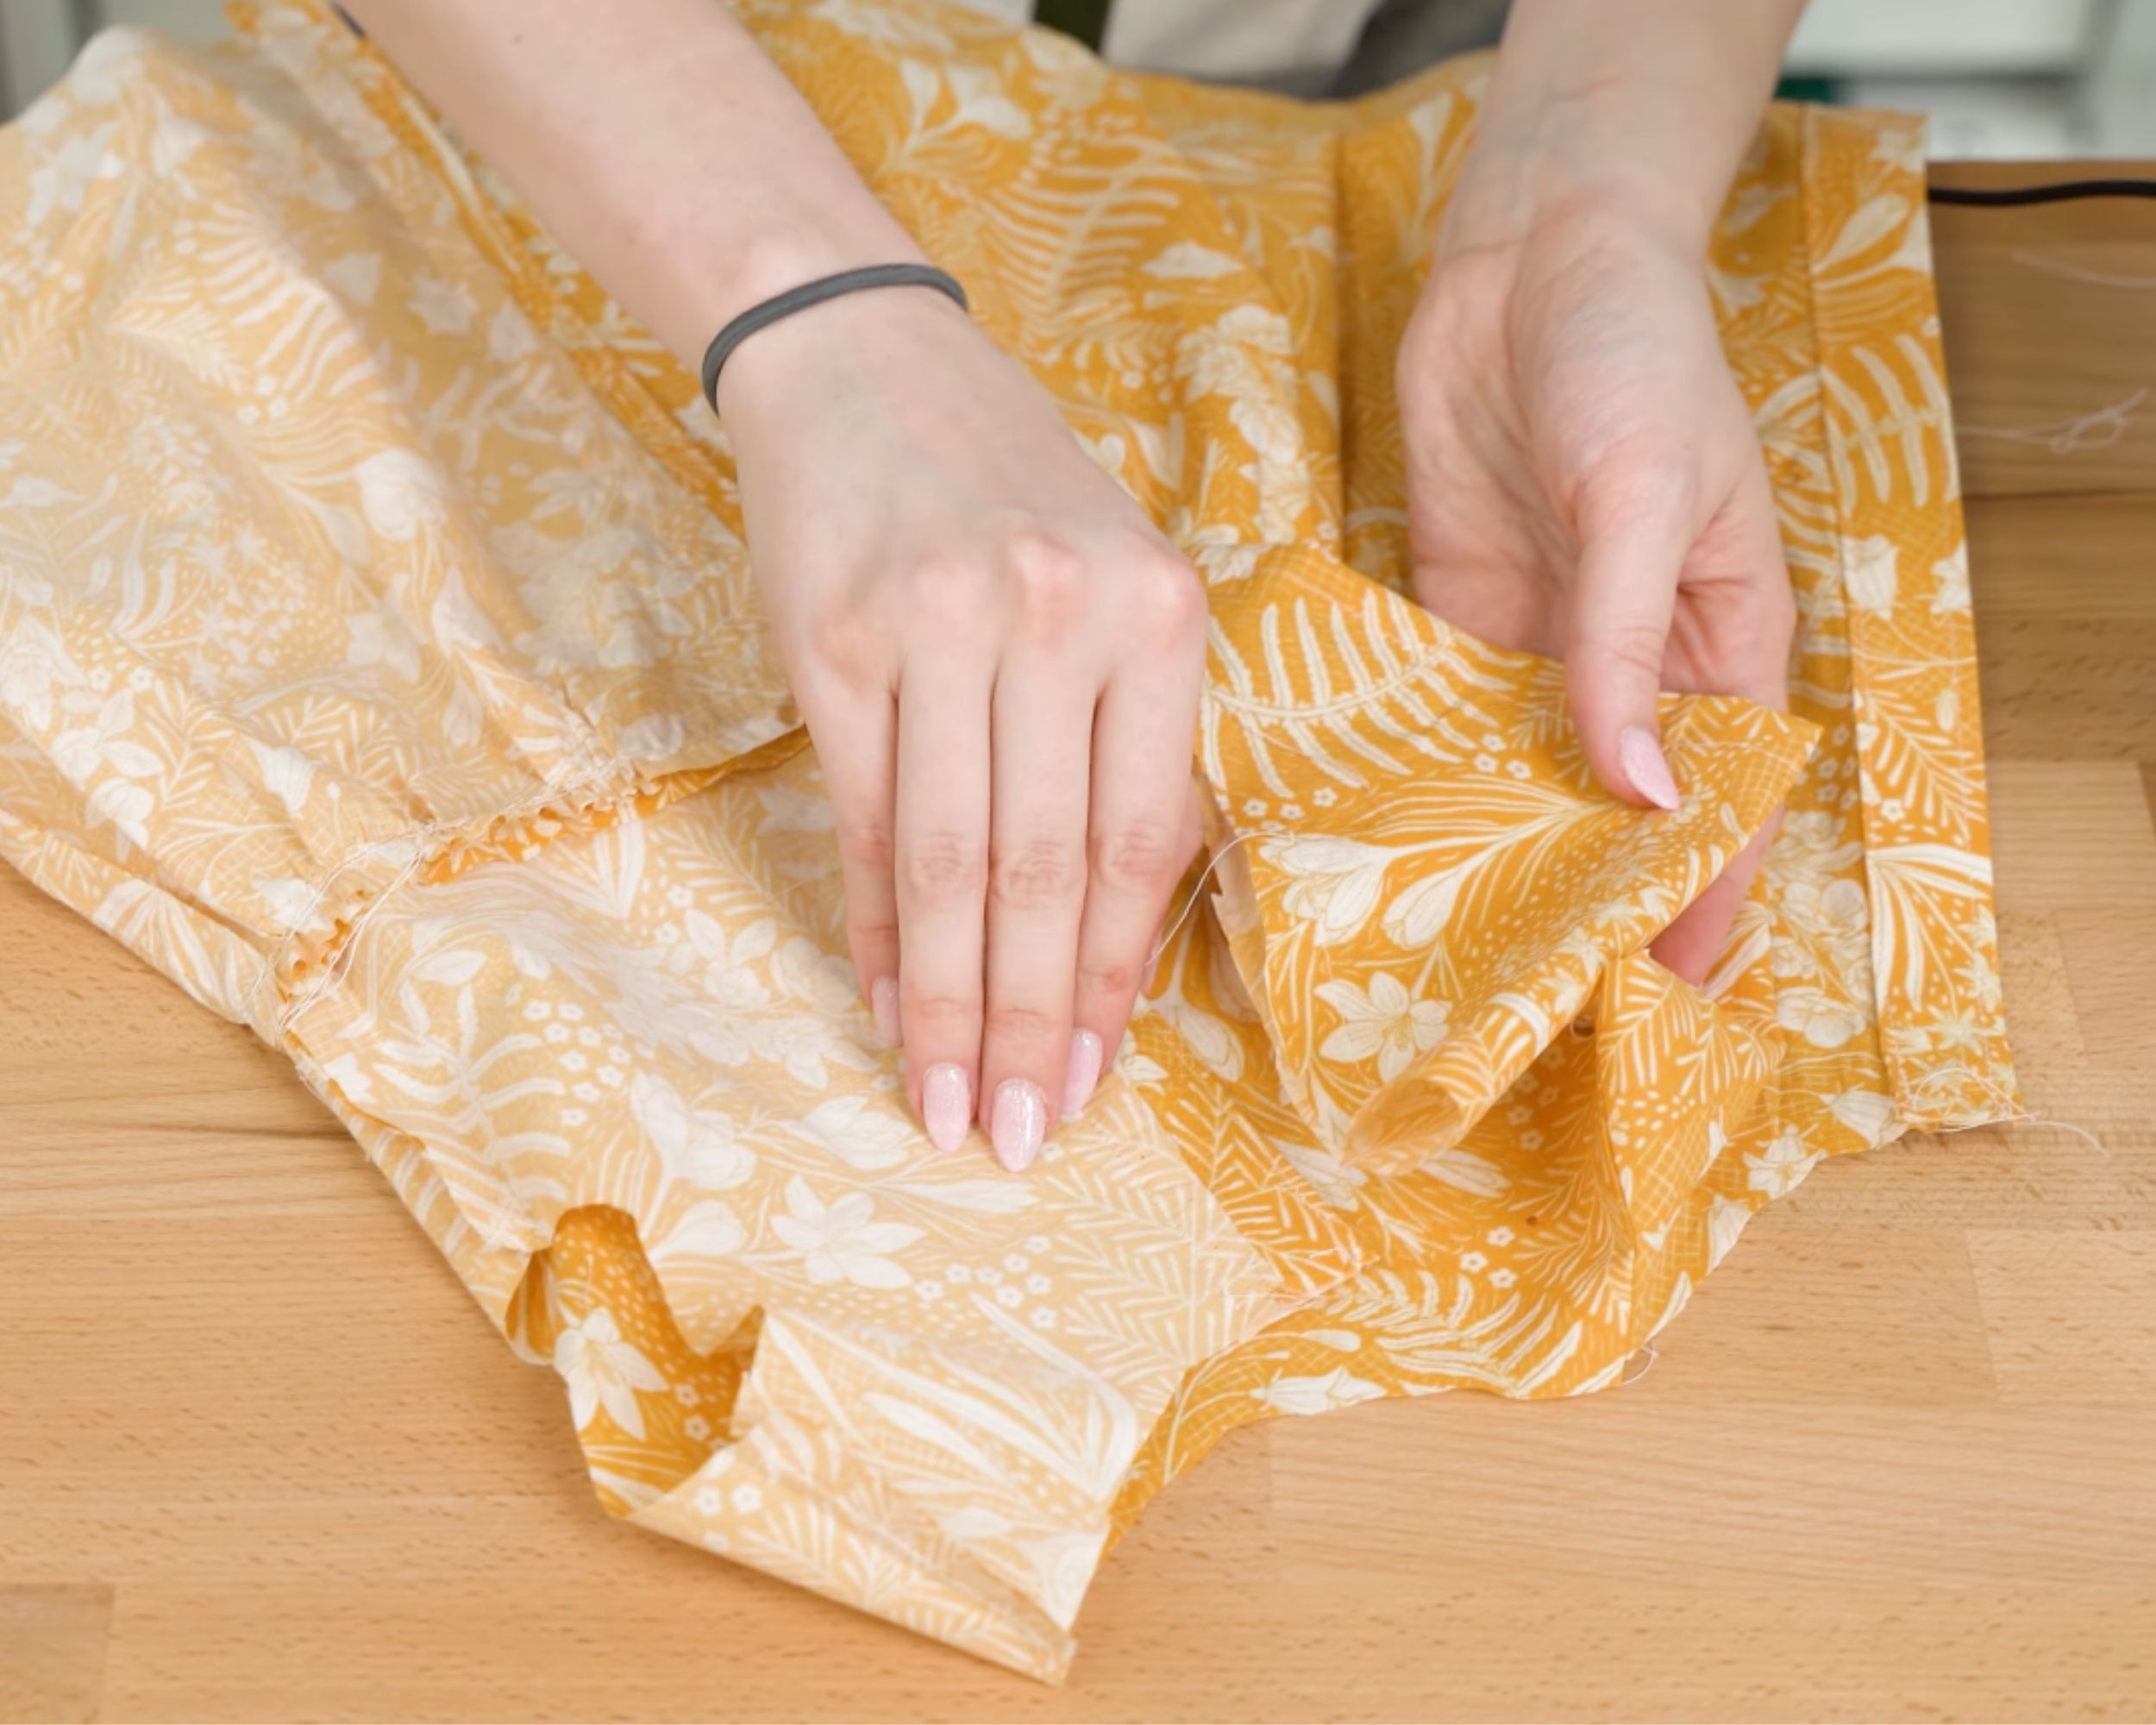 Putting the sleeve inside the bodice